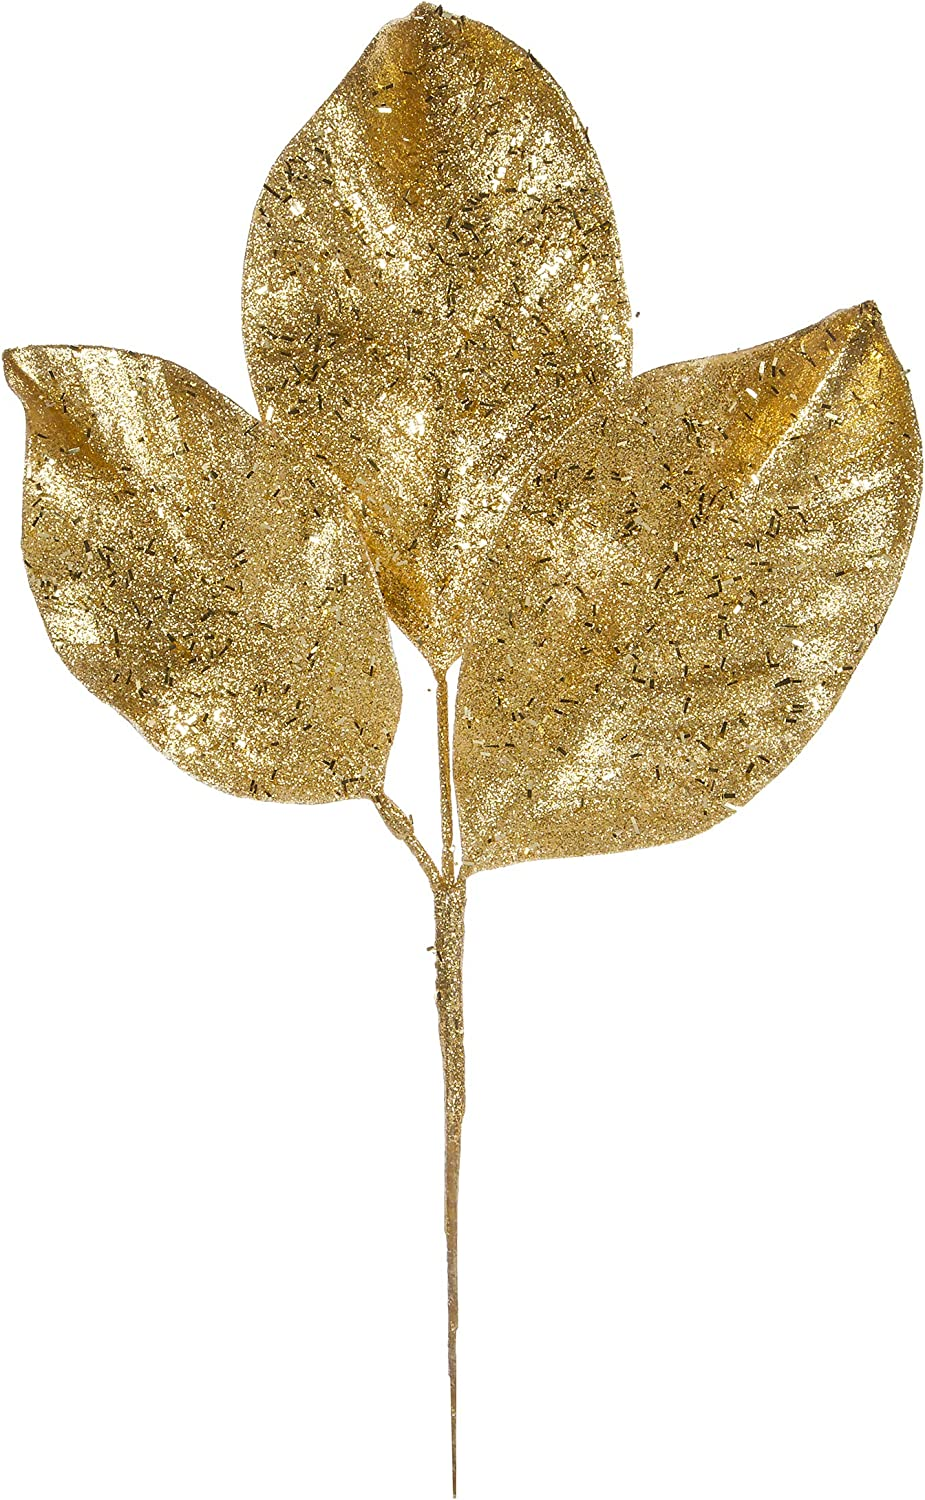 Gold Glittered Magnolia Pick 13.5 inch Christmas Flowers Floral